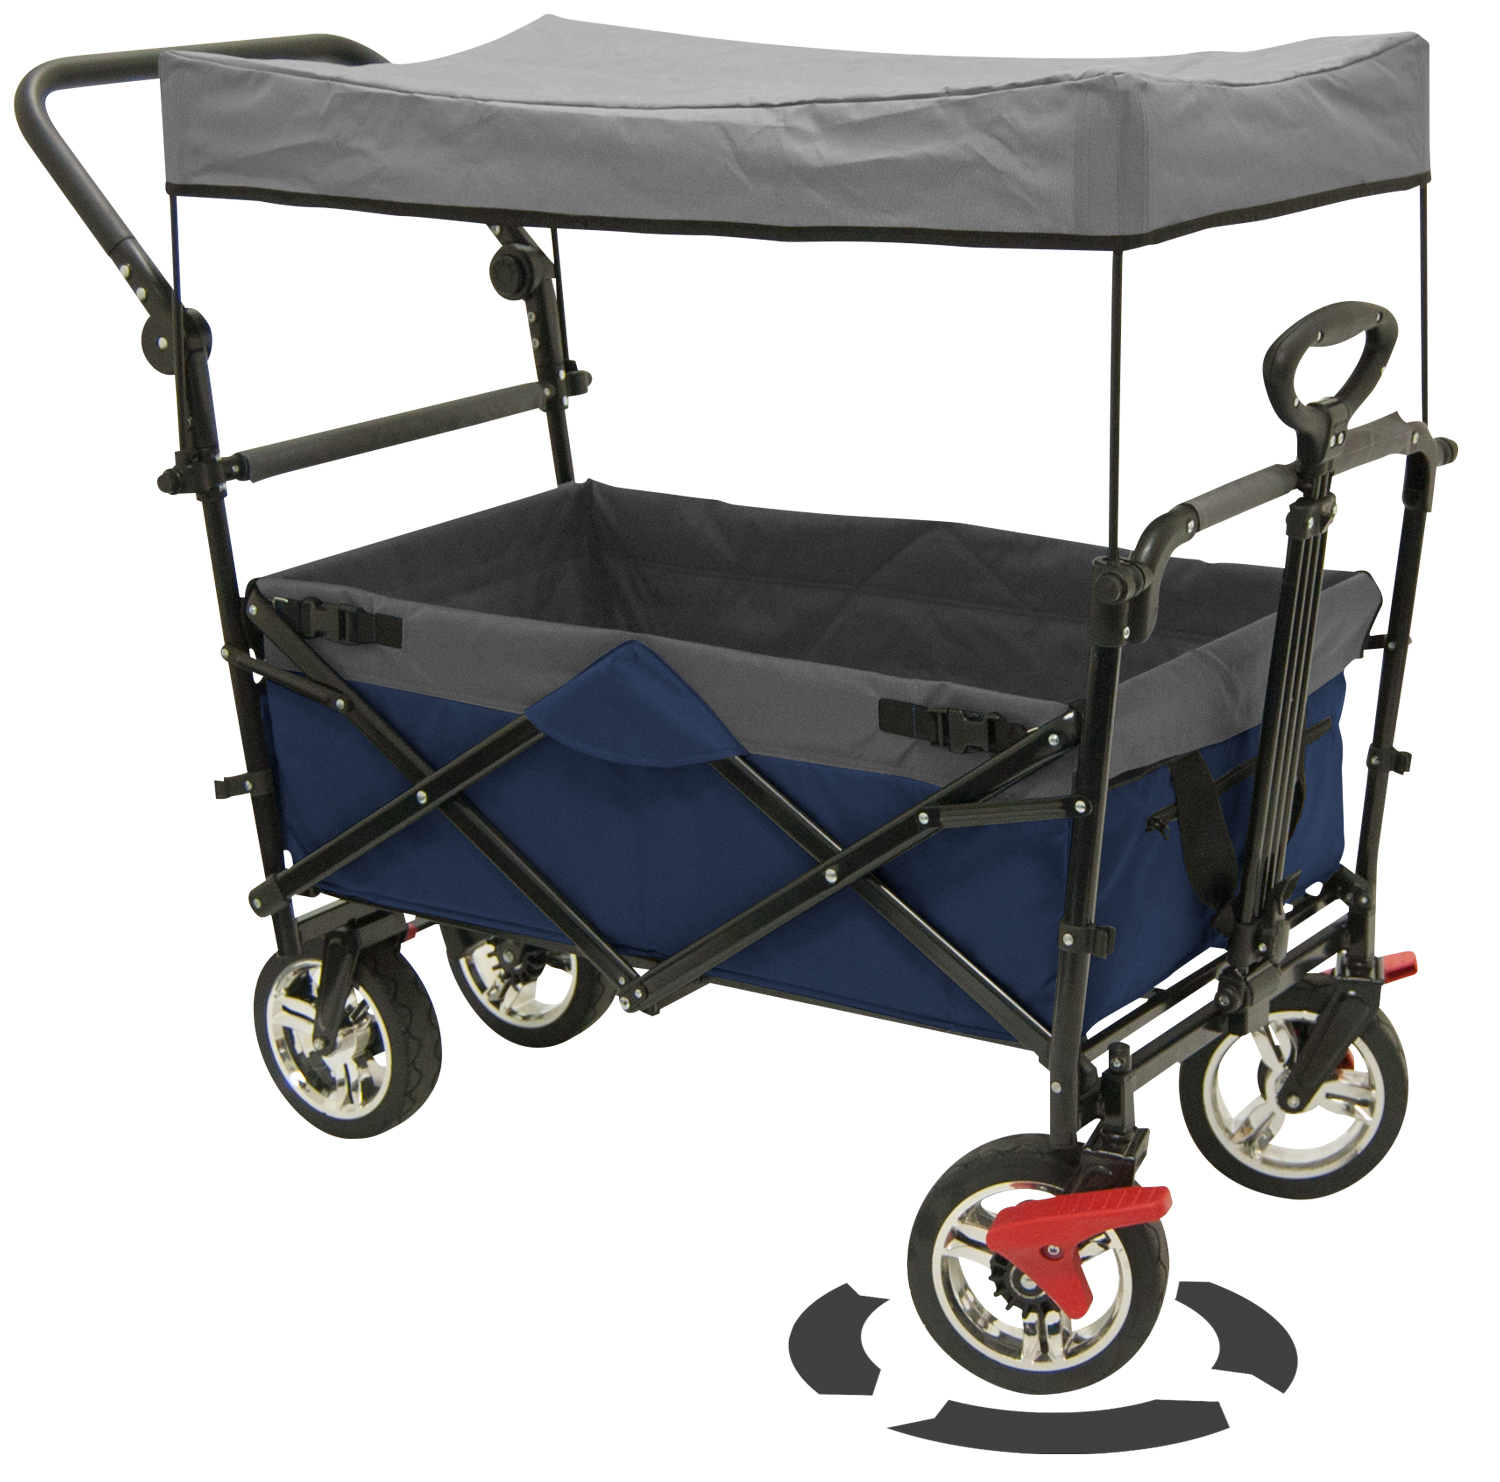 Folding Wagon With Canopy